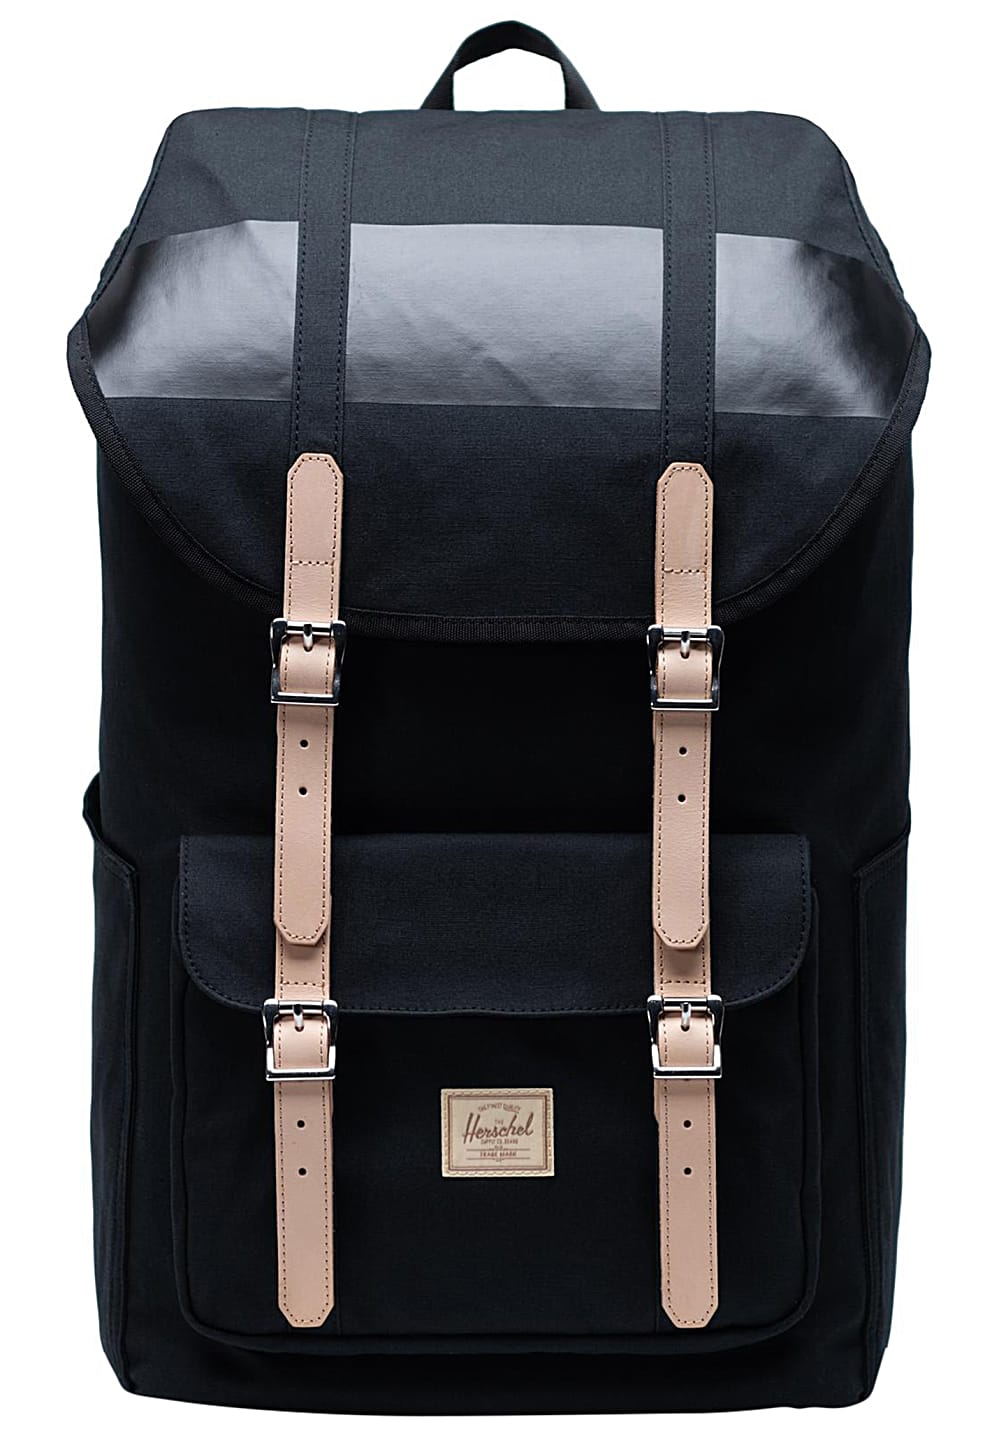 gorące produkty Najnowsza moda ujęcia stóp Herschel SUPPLY CO Little America Premium Cotton 25L - Backpack - Black